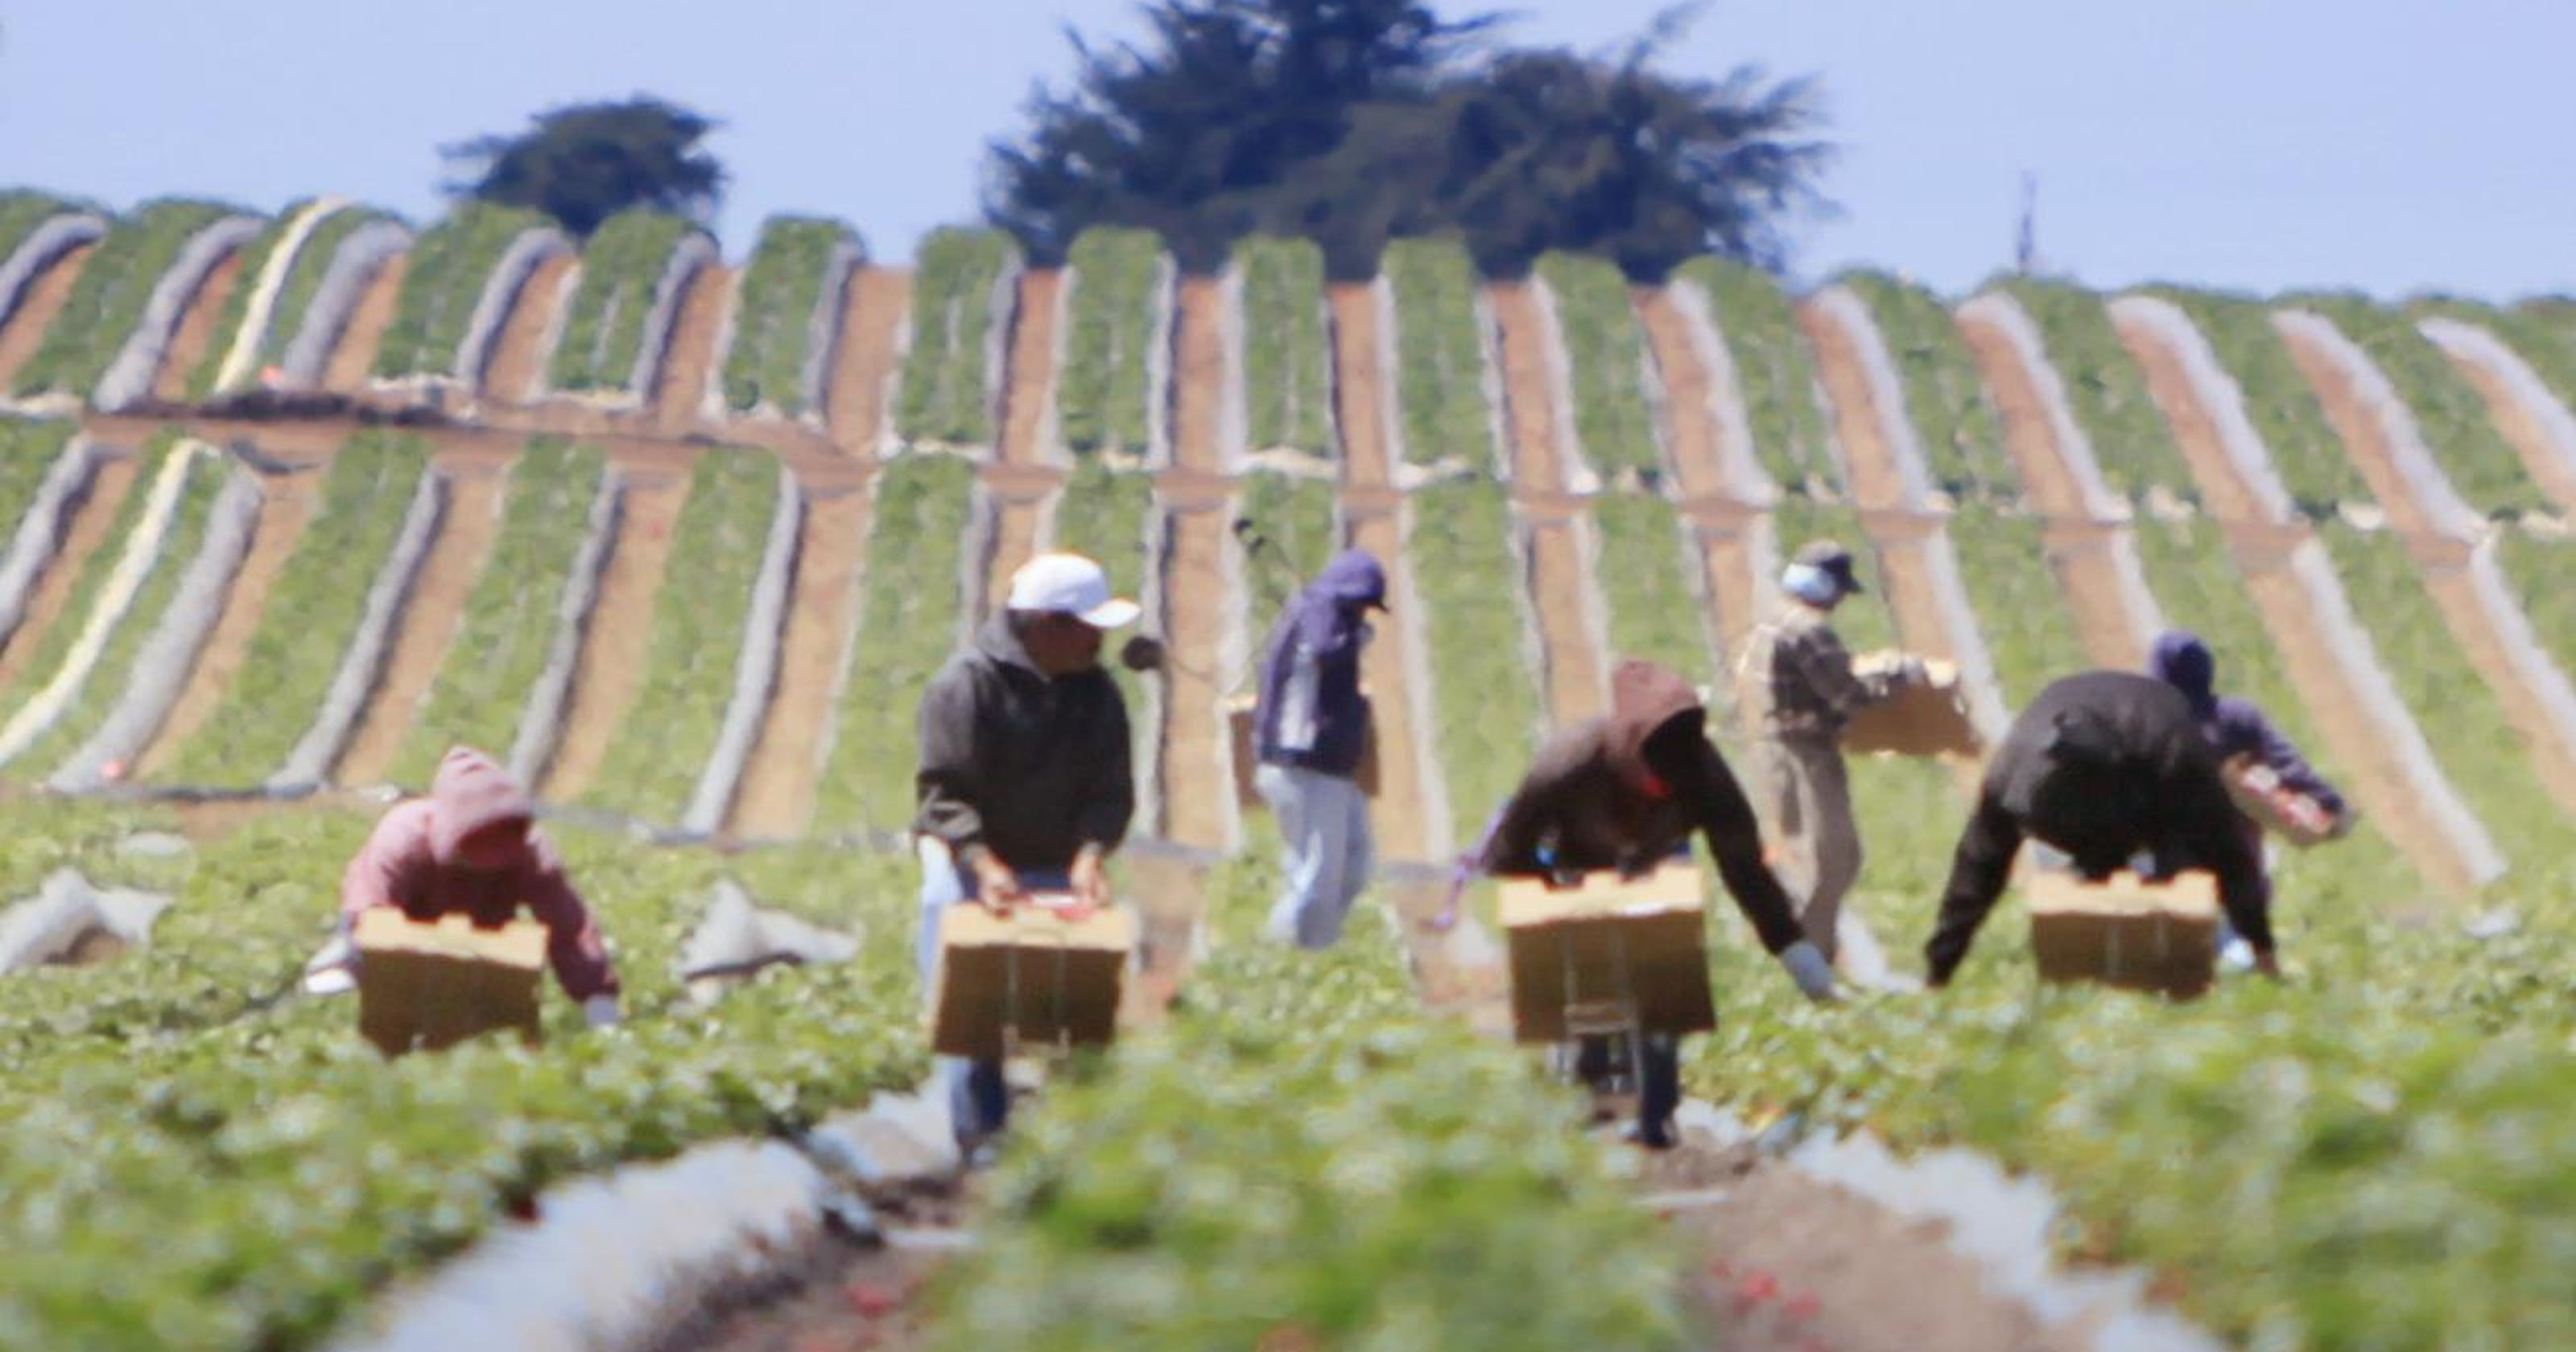 Some Monterey County produce exceed pesticide limits, state report says